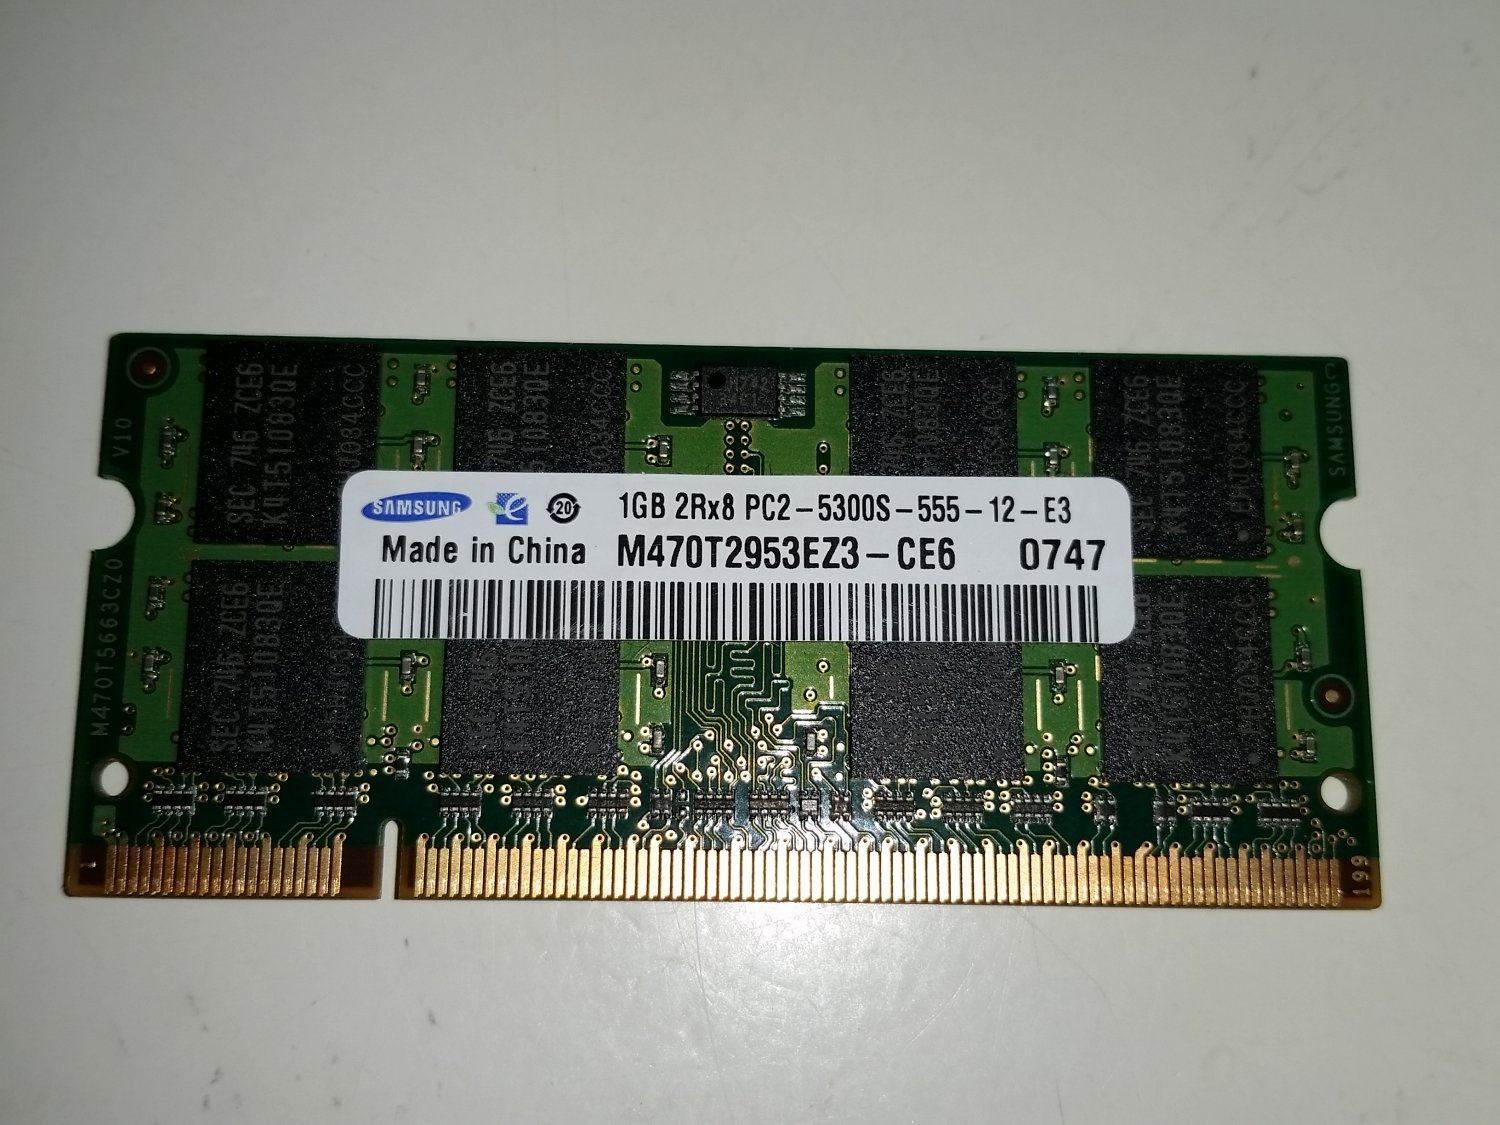 Samsung 1GB DDR2 PC2 5300S 204 Pin Laptop Memory - Used